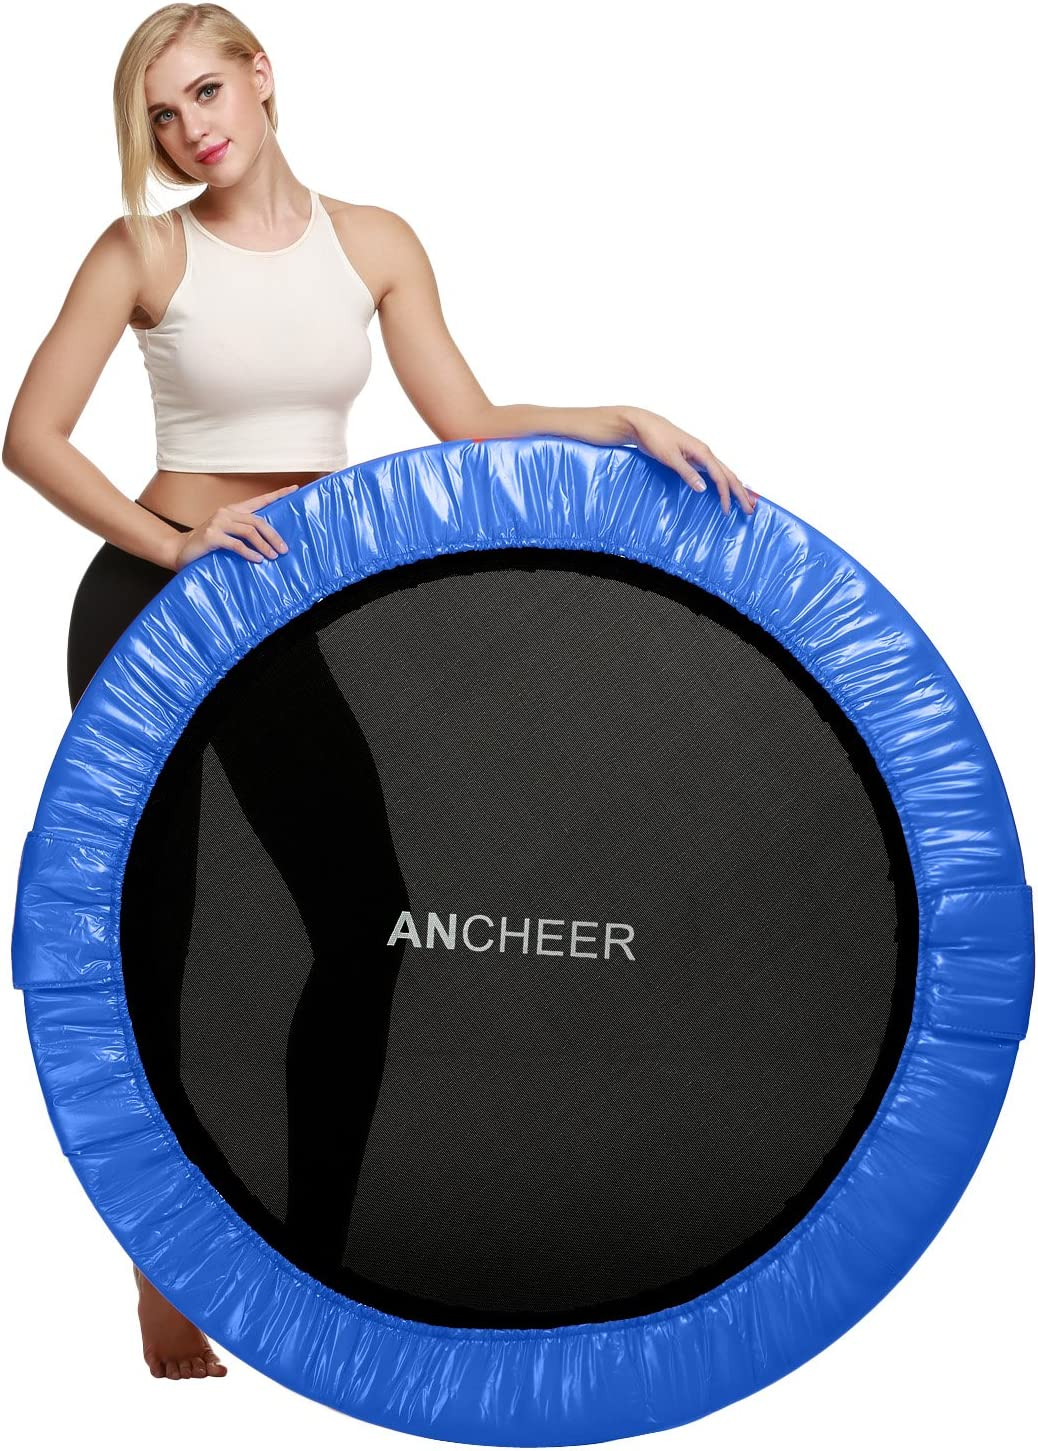 """ANCHEER 50"""" Store Trampoline with Adjustable Handle B Handrail T Sale special price"""